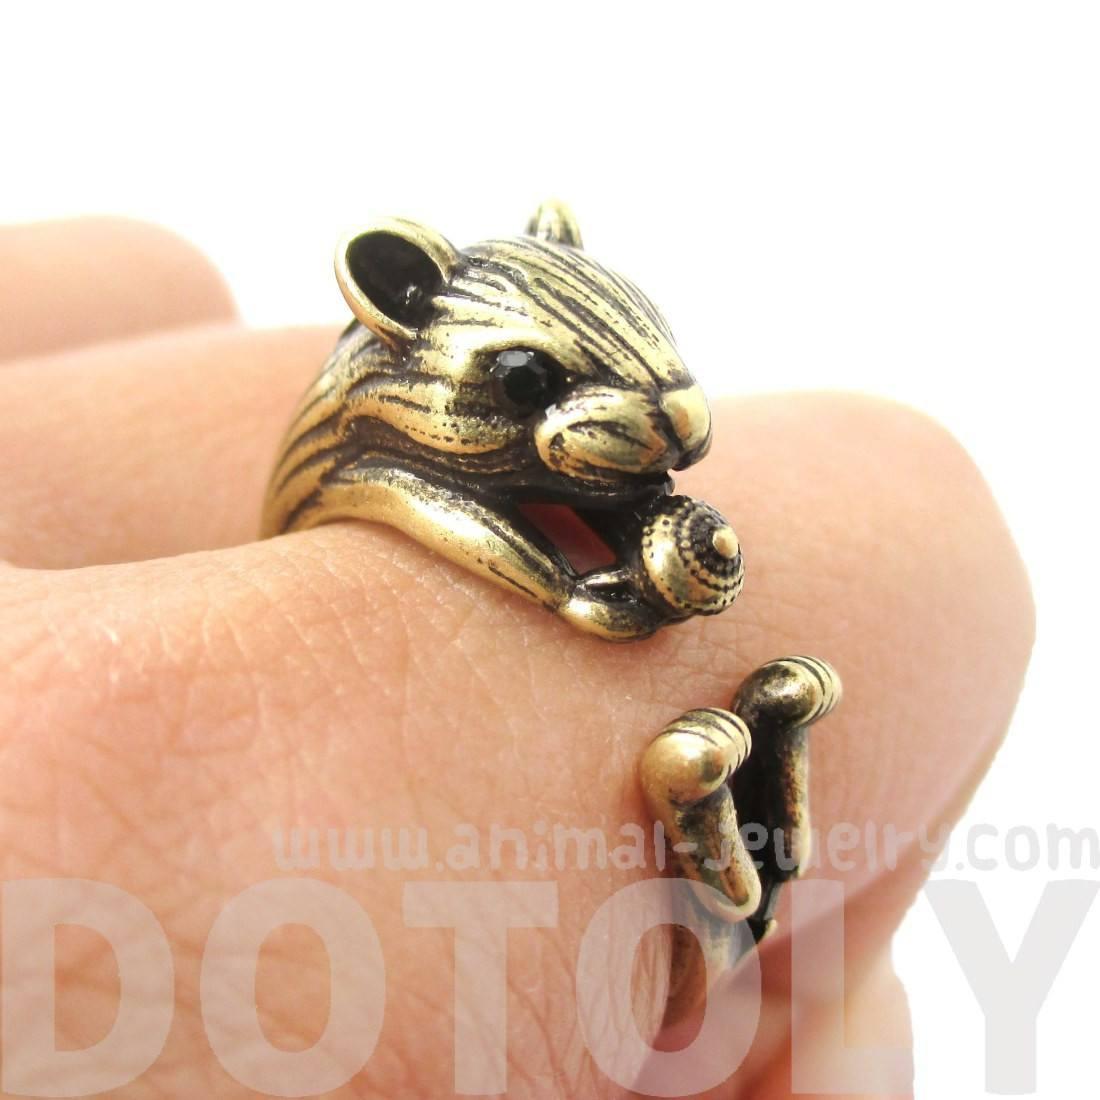 Realistic Hamster Gerbil With Walnut Animal Wrap Ring in Brass